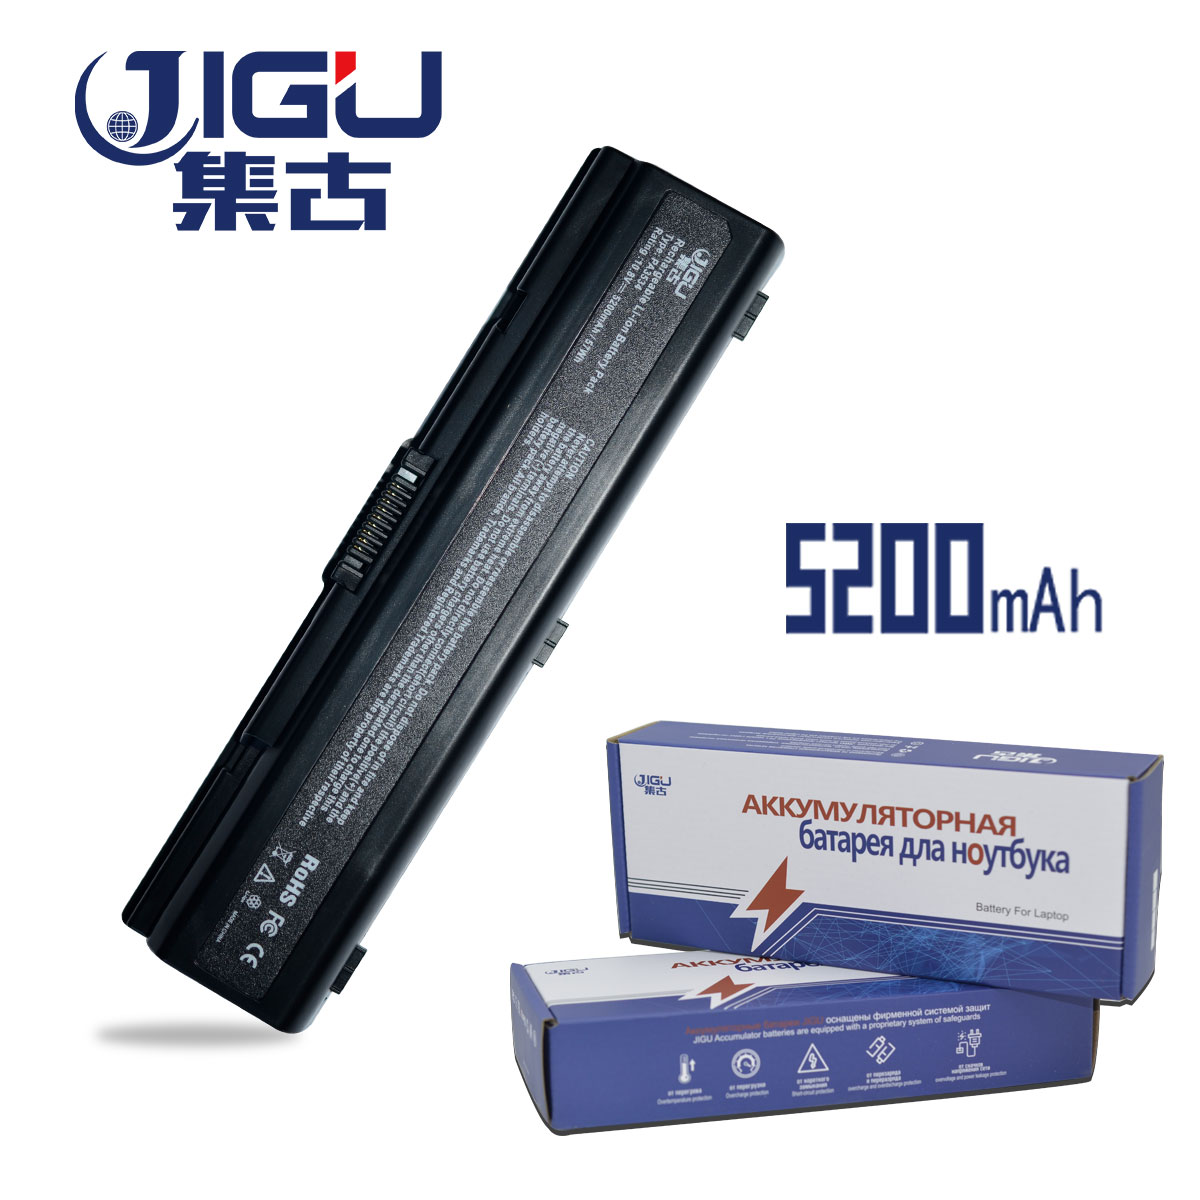 JIGU Laptop Battery For <font><b>Toshiba</b></font> Satellite A500 L203 <font><b>L500</b></font> L505 L555 M205 M207 M211 M216 M212 Pro A210 L300D L450 A200 L300 L550 image